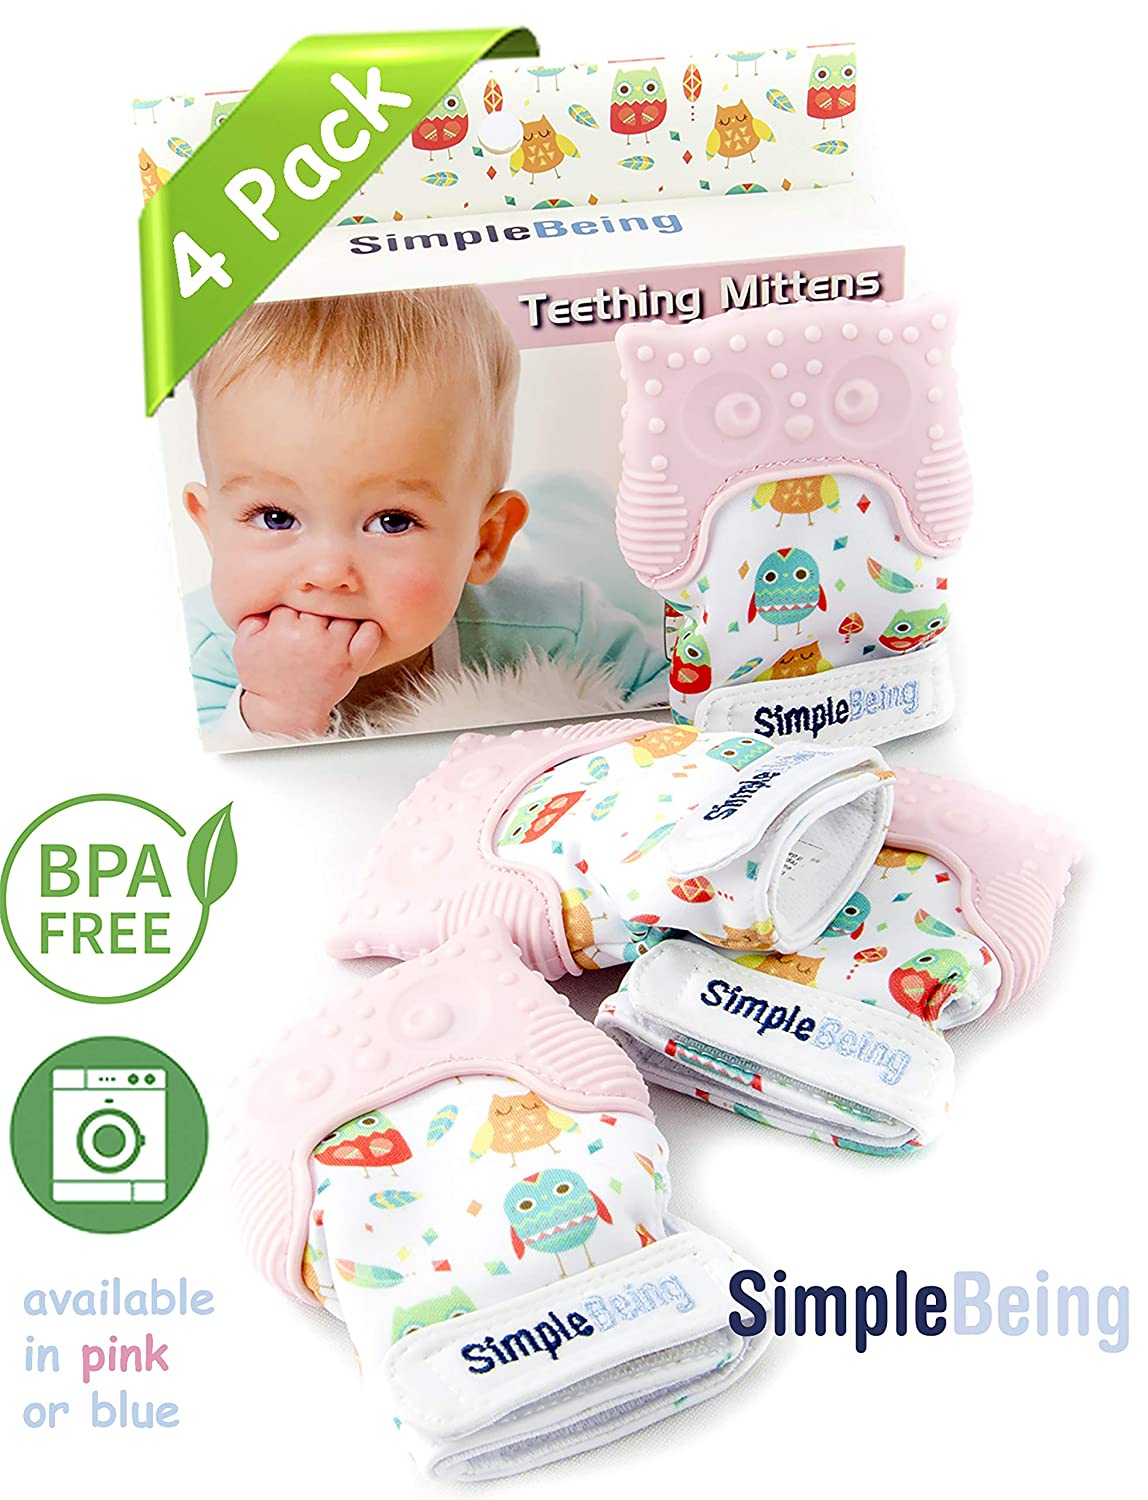 Simple Being Baby Teething Mittens, BPA Free Silicone Glove Teether